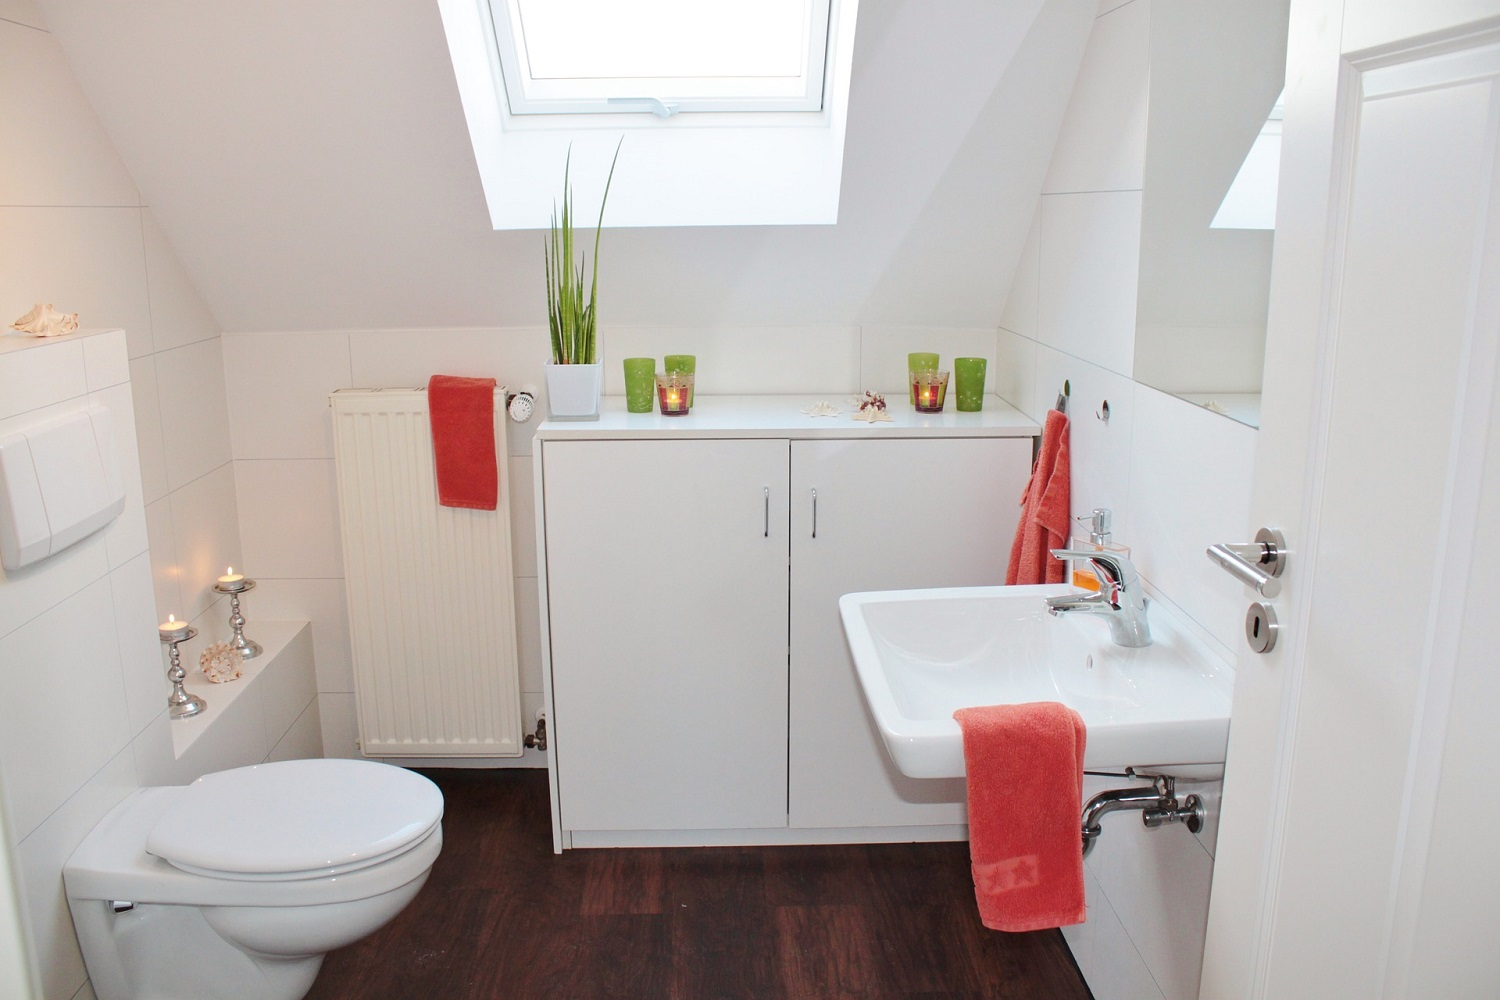 How to Add Personality and Style to White Bathroom Suites